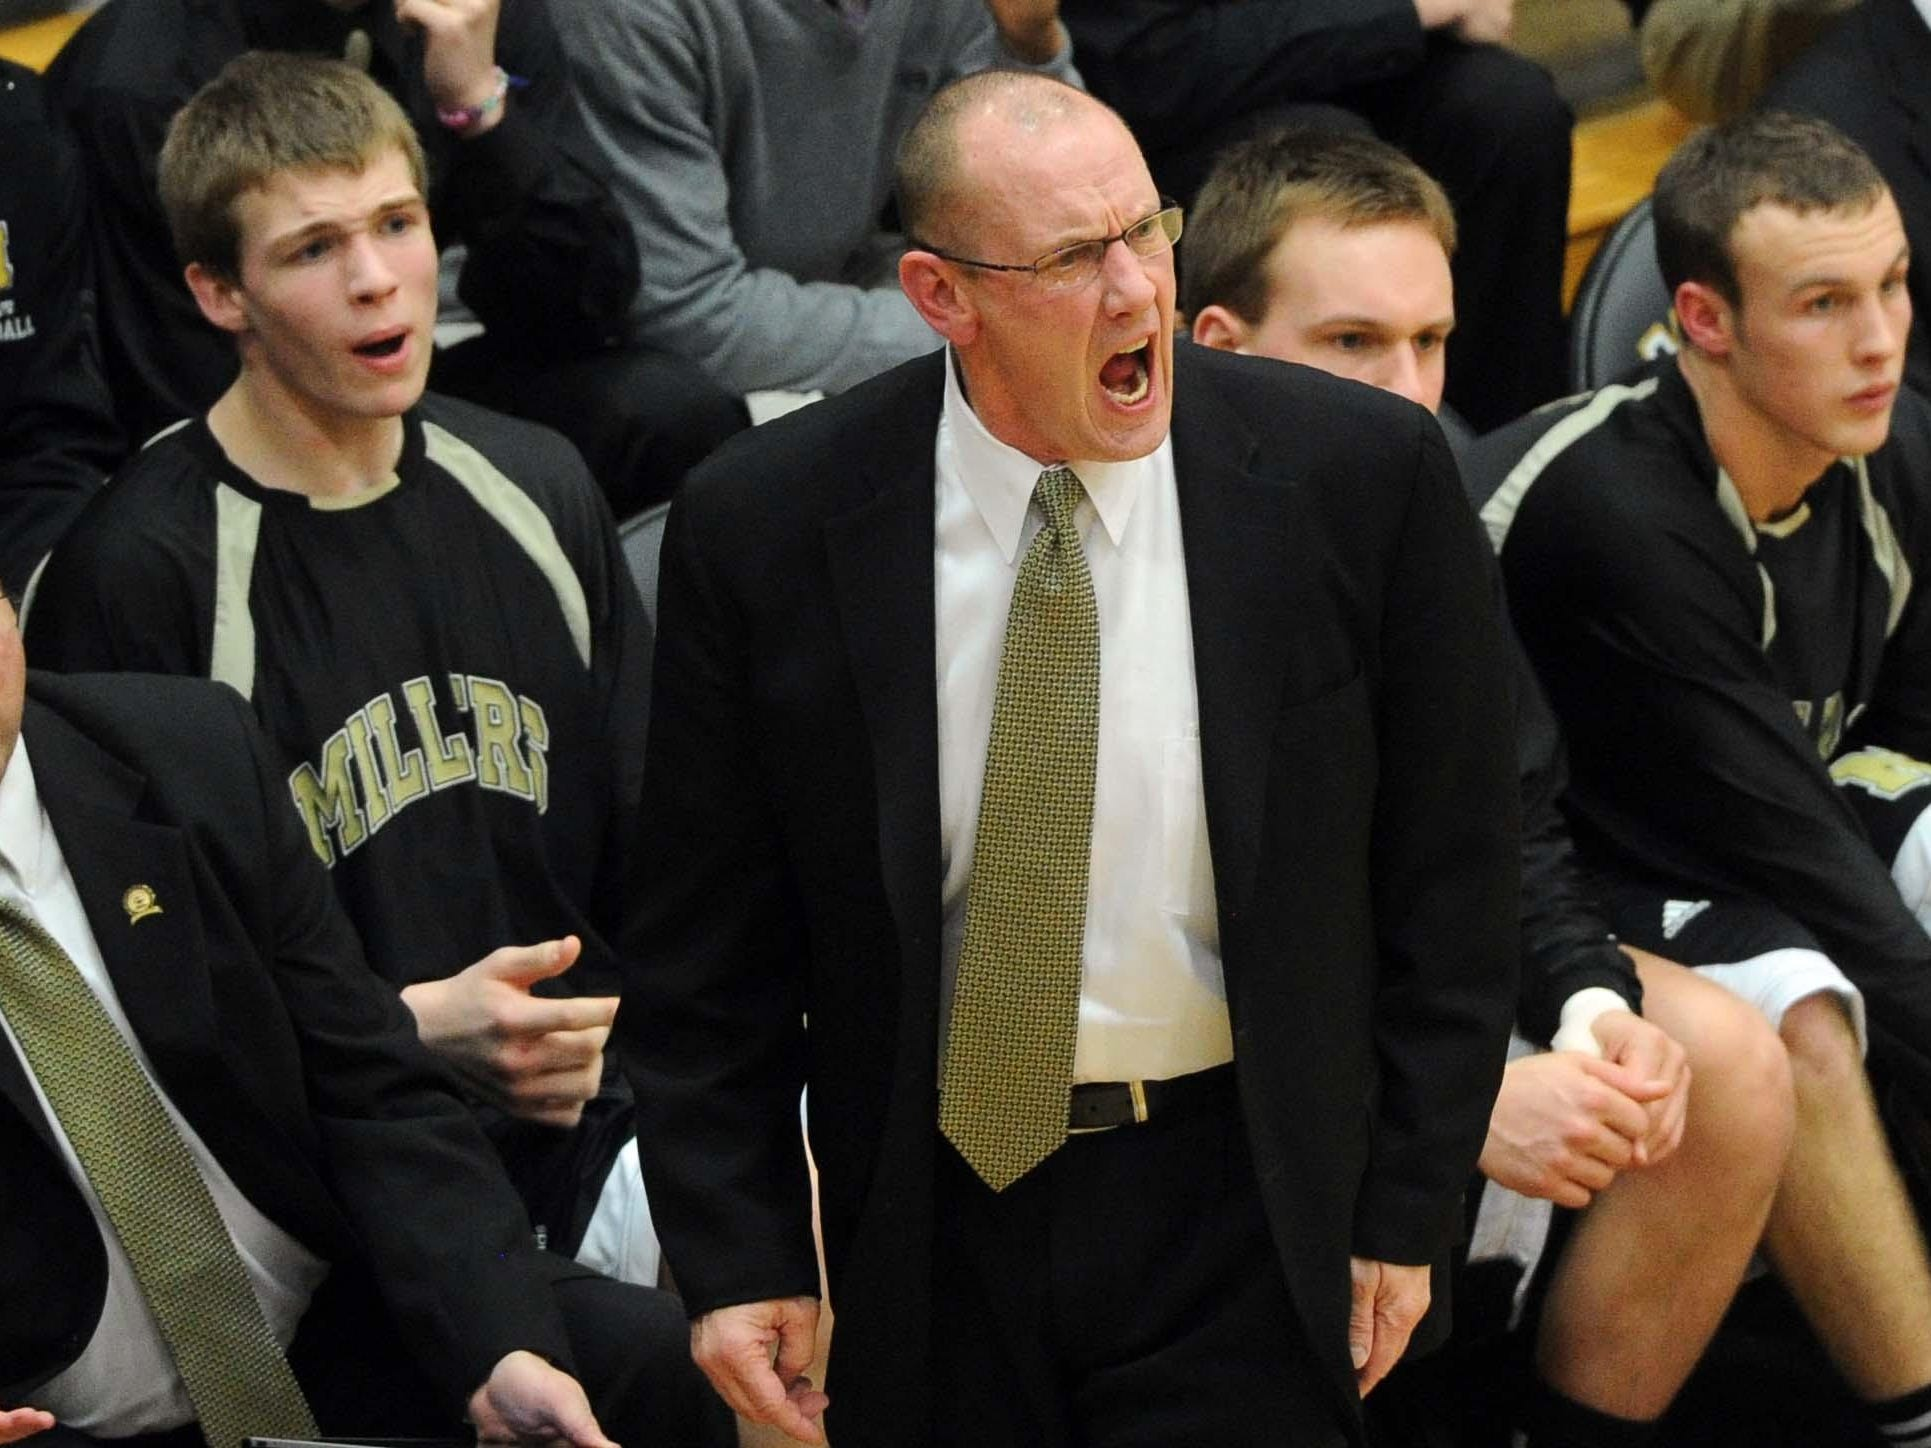 Noblesville coach Dave McCollough expresses himself during the game. Hamilton Southeastern defeated Noblesville 73-65 in the Noblesville sectional Friday March 2, 2012. Rob Goebel/The Star.